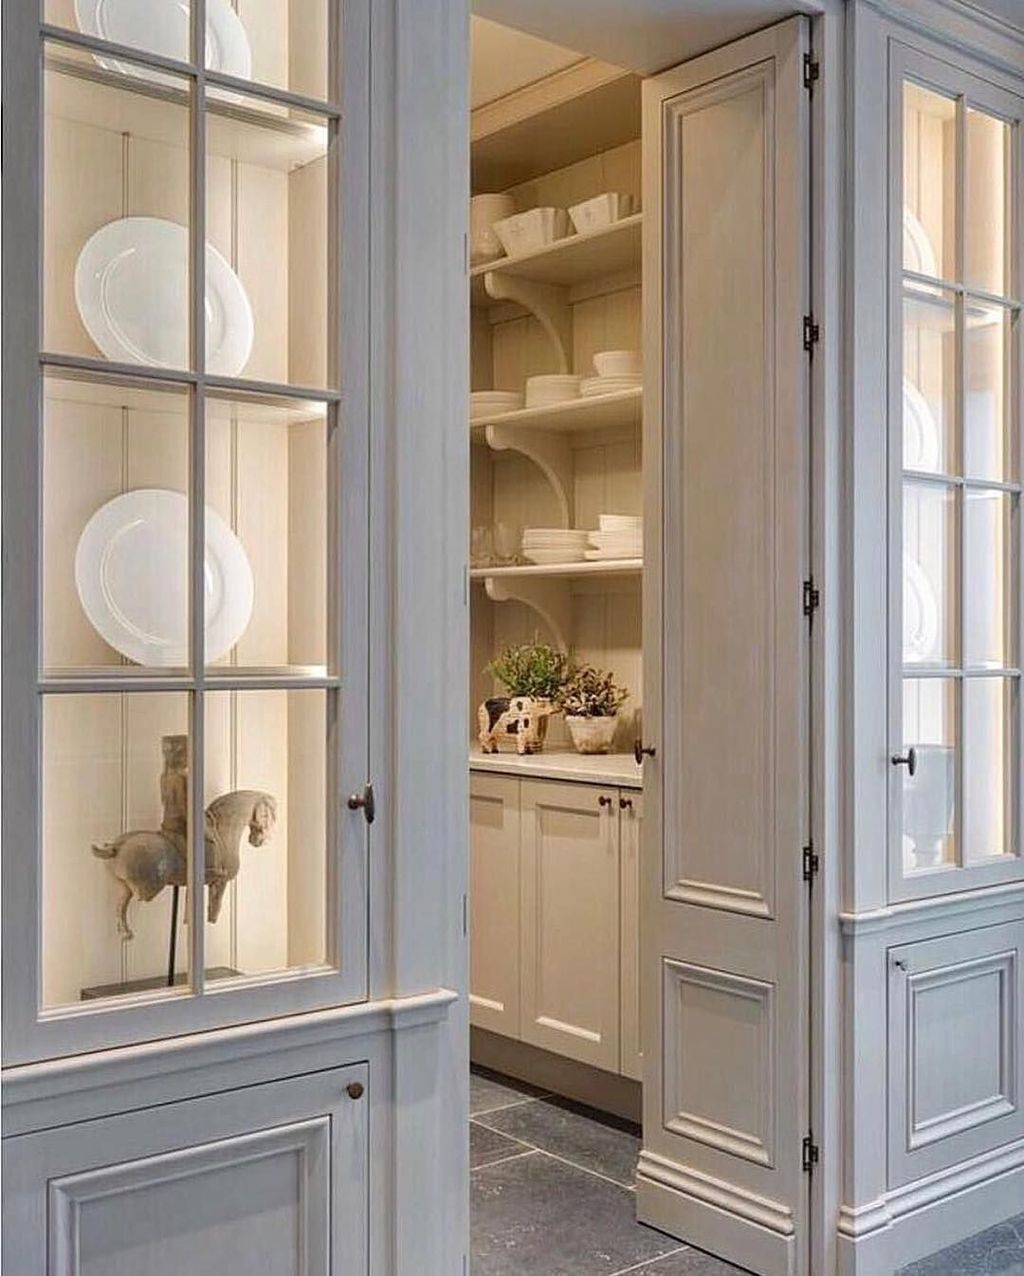 Cool 47 Astonishing Built Kitchen Pantry Design Ideas More At Https Homyfeed Com 2019 03 05 Pantry Design Glass Kitchen Cabinets Glass Kitchen Cabinet Doors